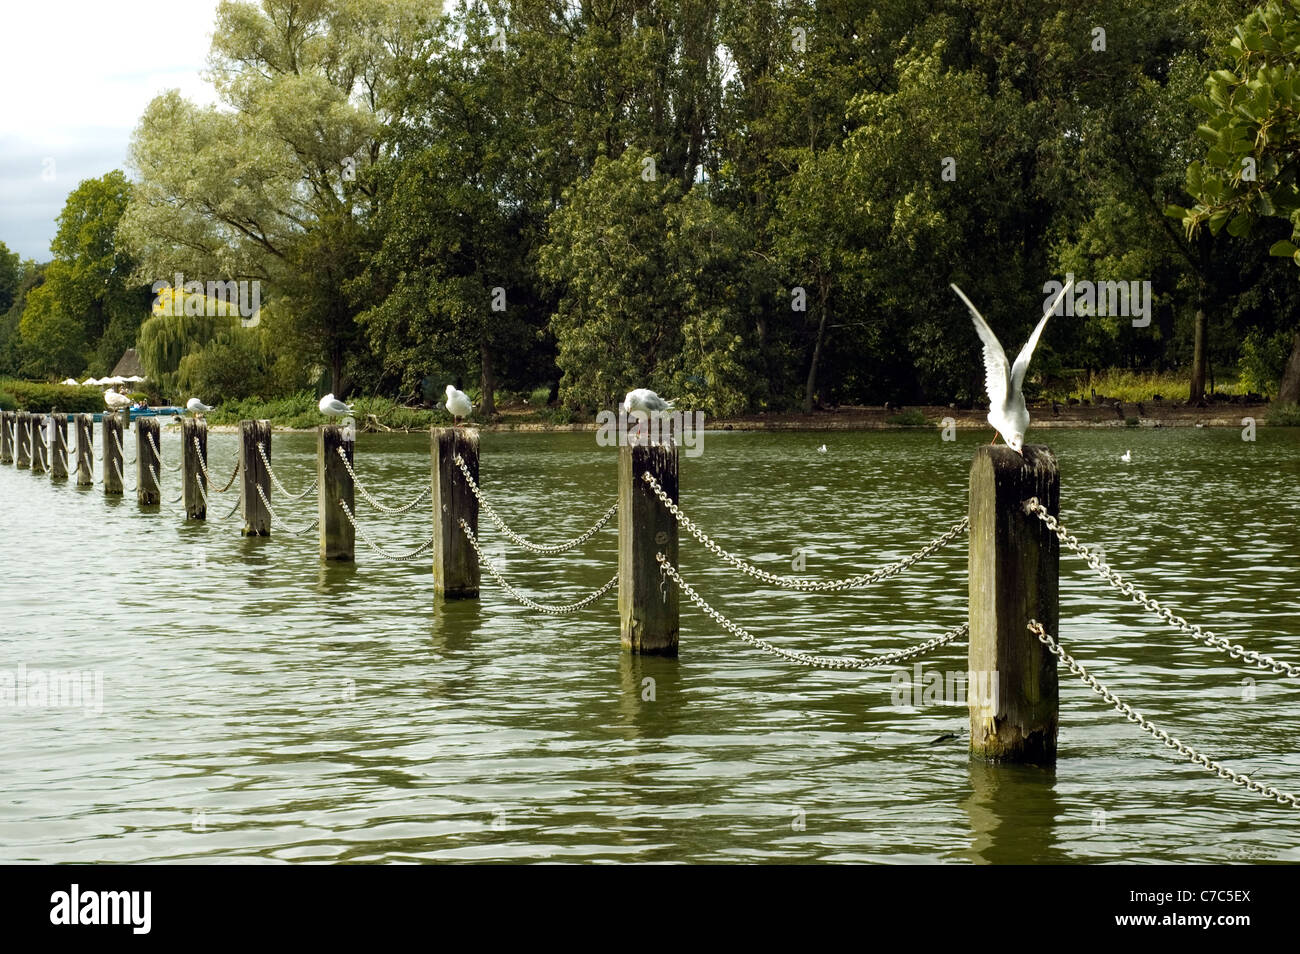 Common Gulls (Larus Canus) on dividing posts in a boating lake in Regents Park, London, UK. Taken on the 13th August - Stock Image